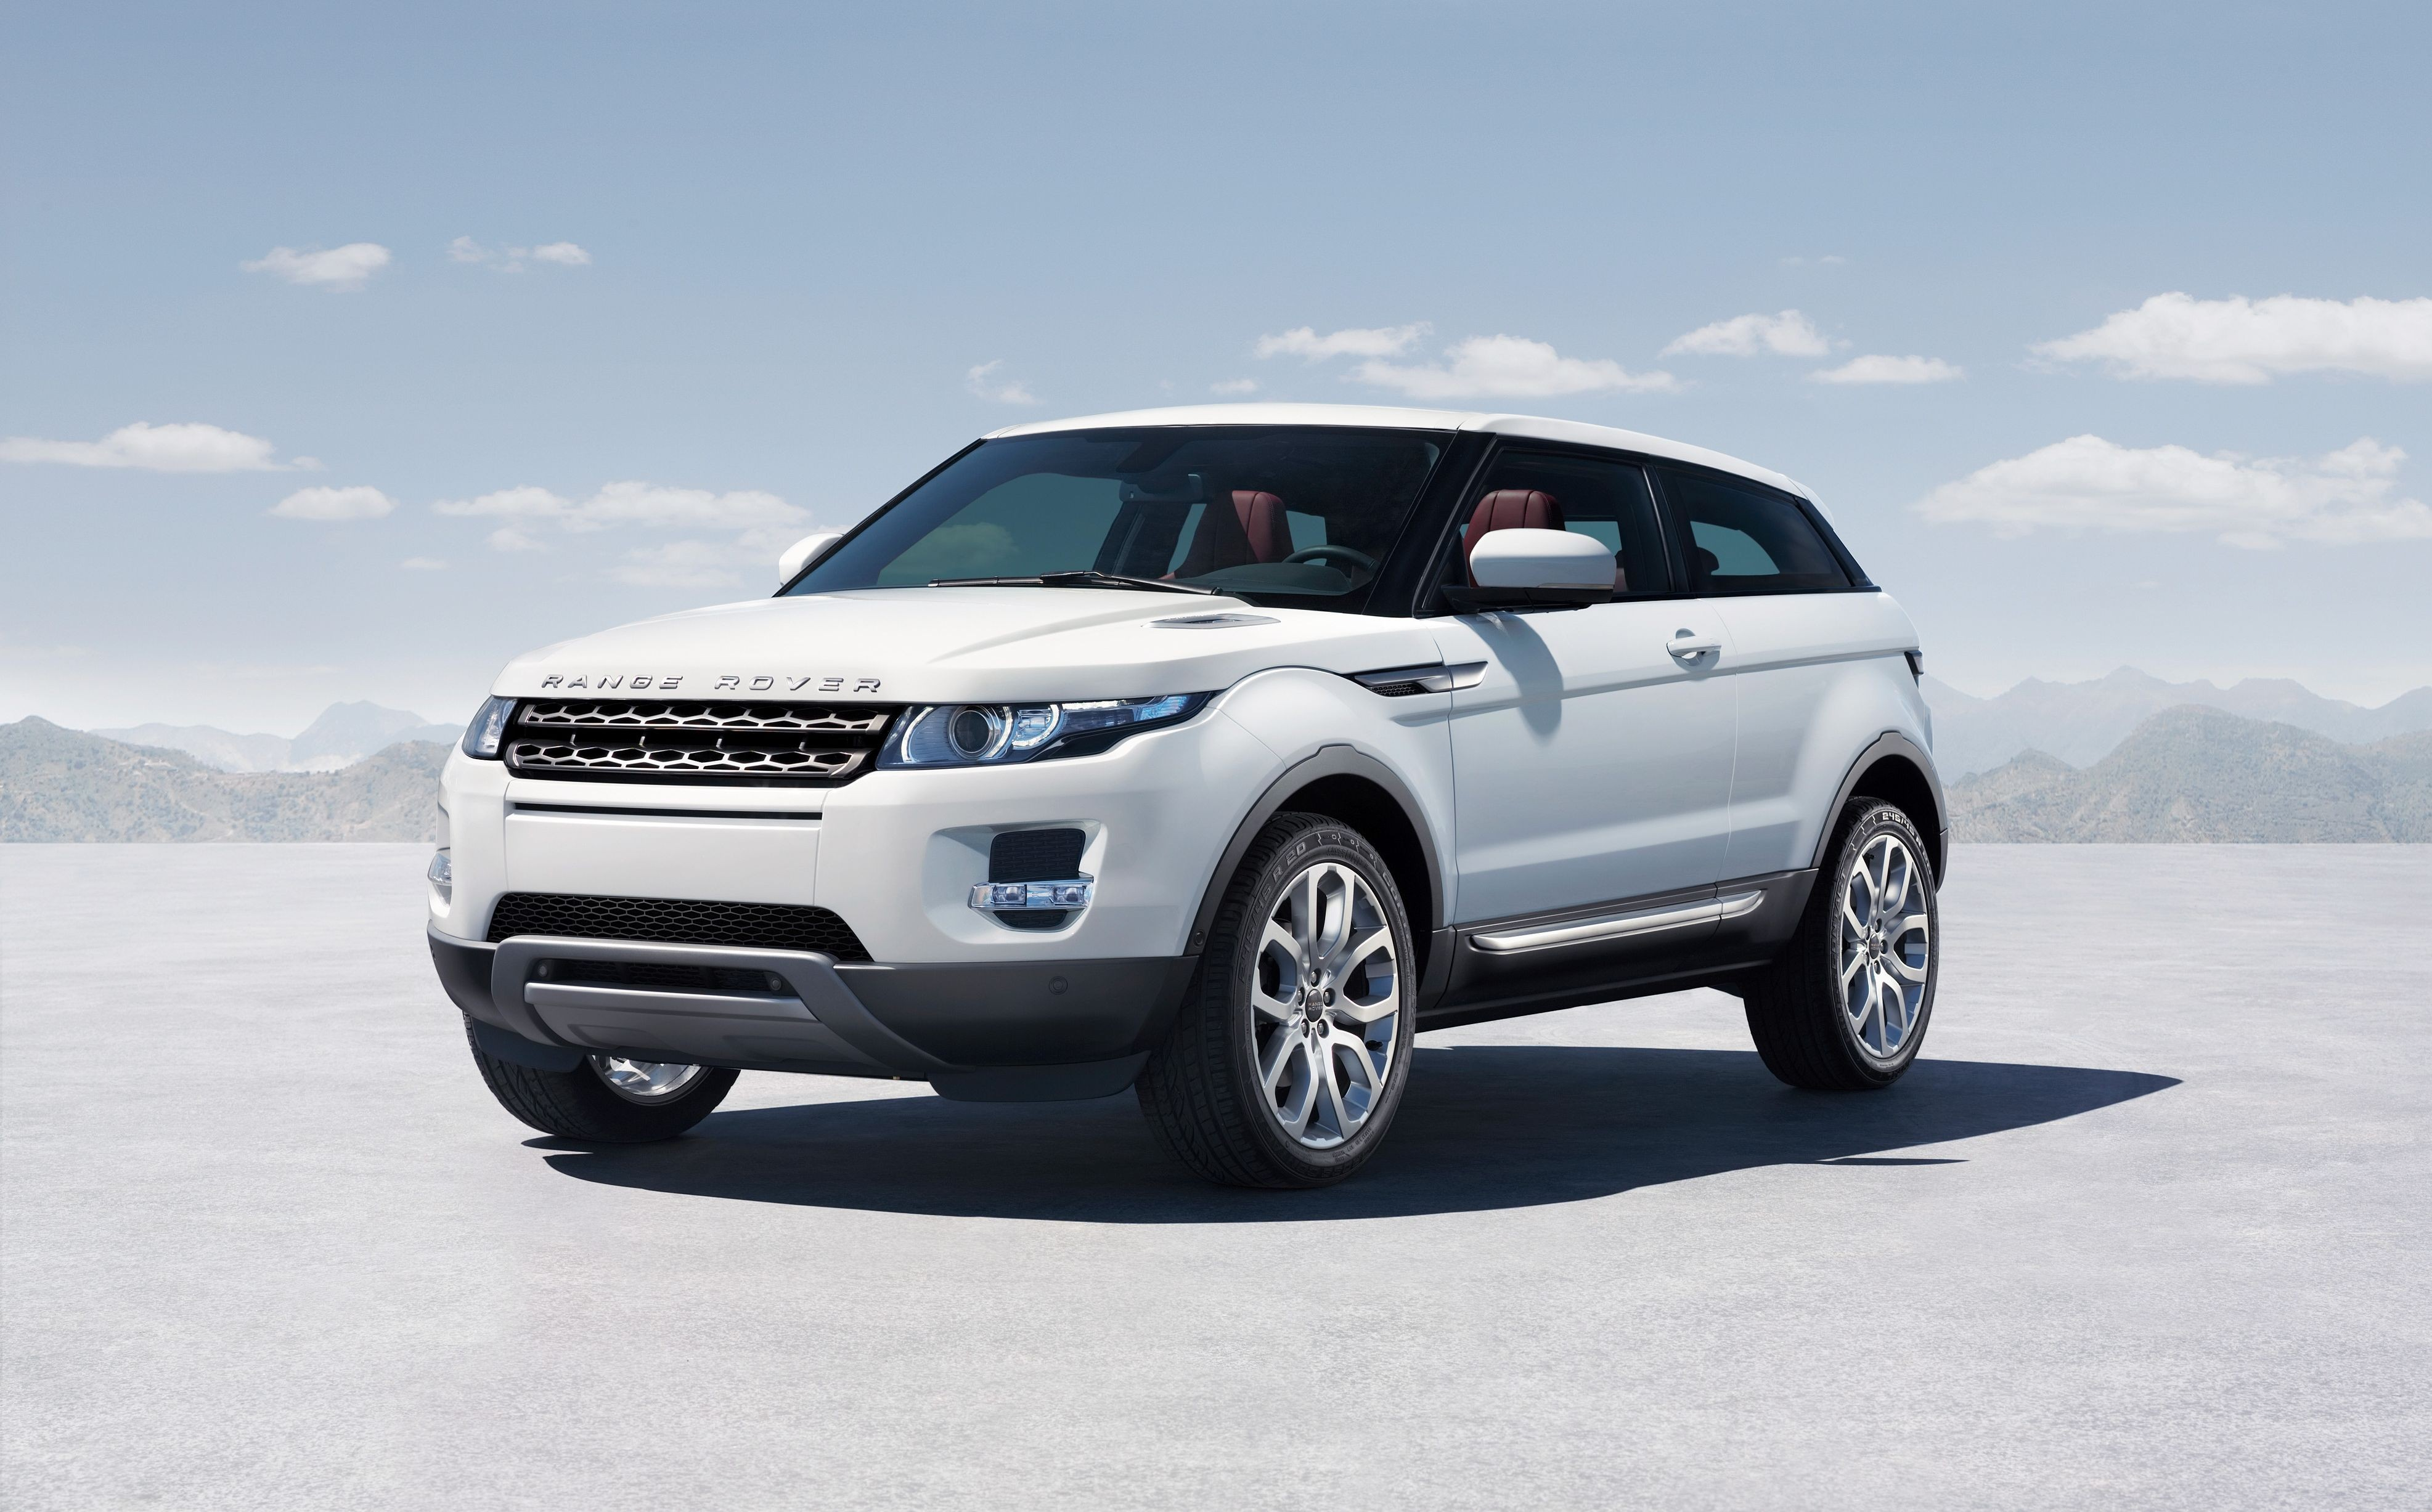 Range Rover Best Luxury Cars: Wallpaper Range Rover Evoque, Crossover, Luxury Cars